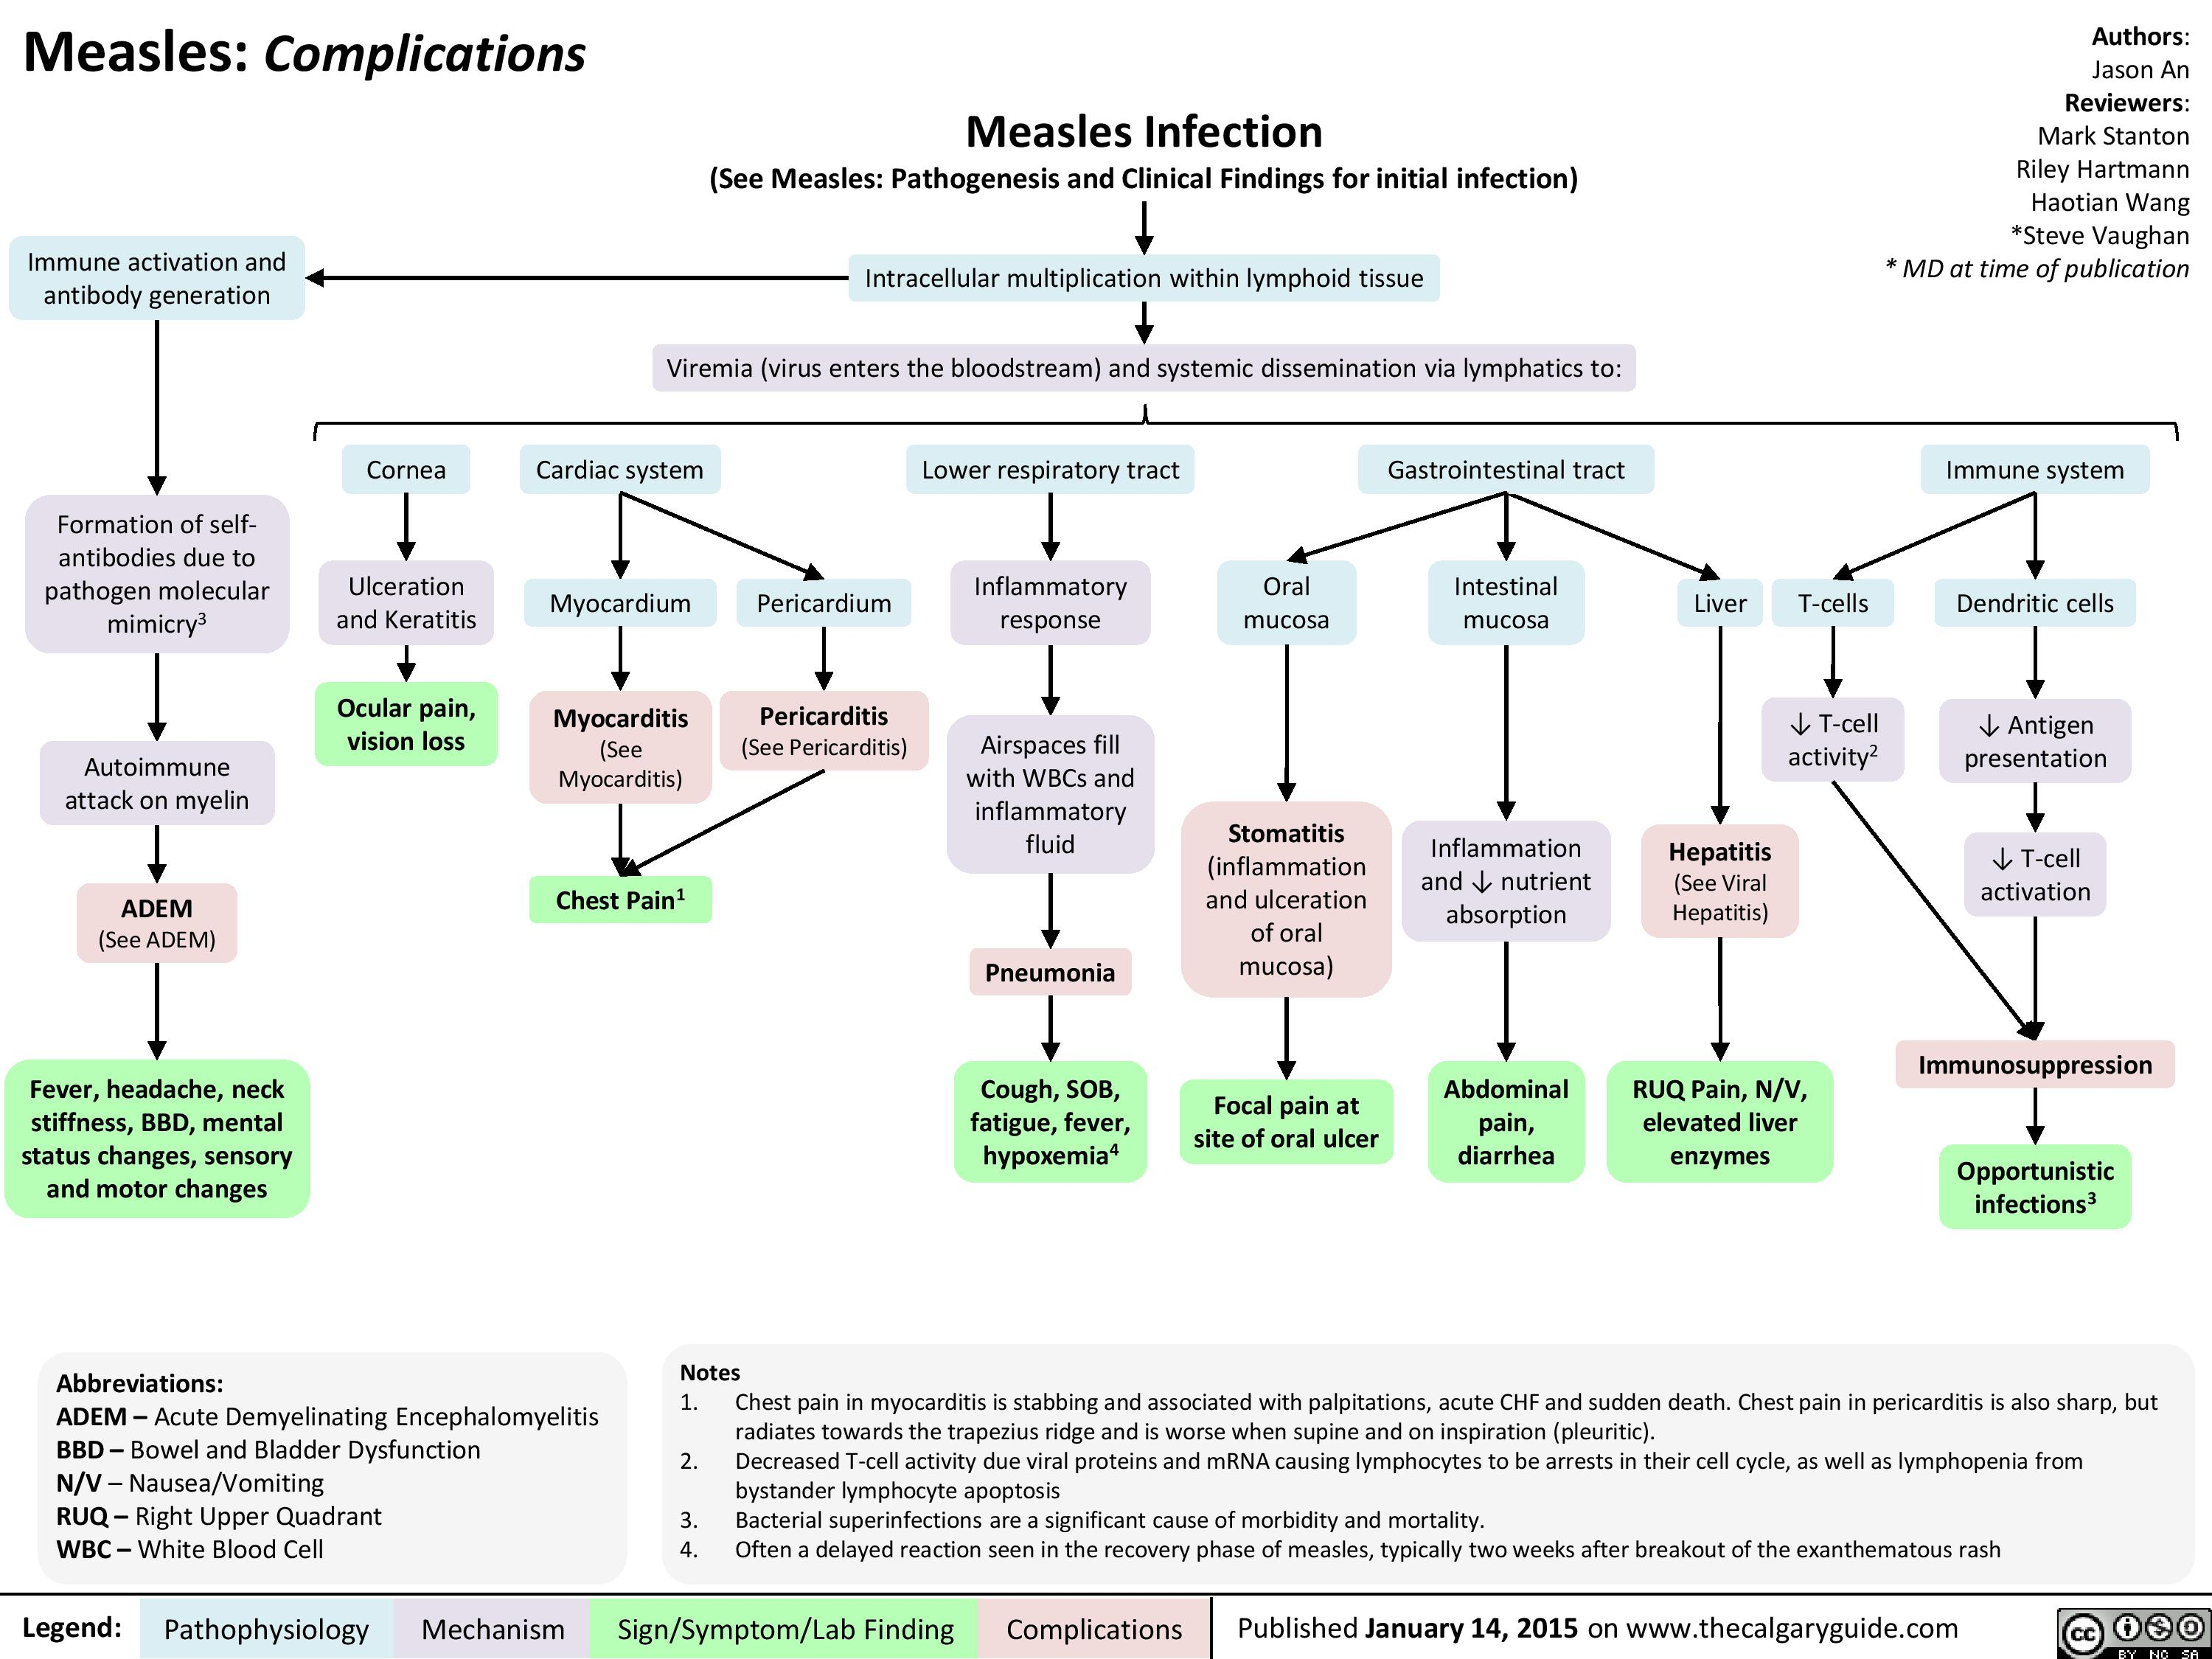 Complications of Measles Pathogenesis and Clinical Findings